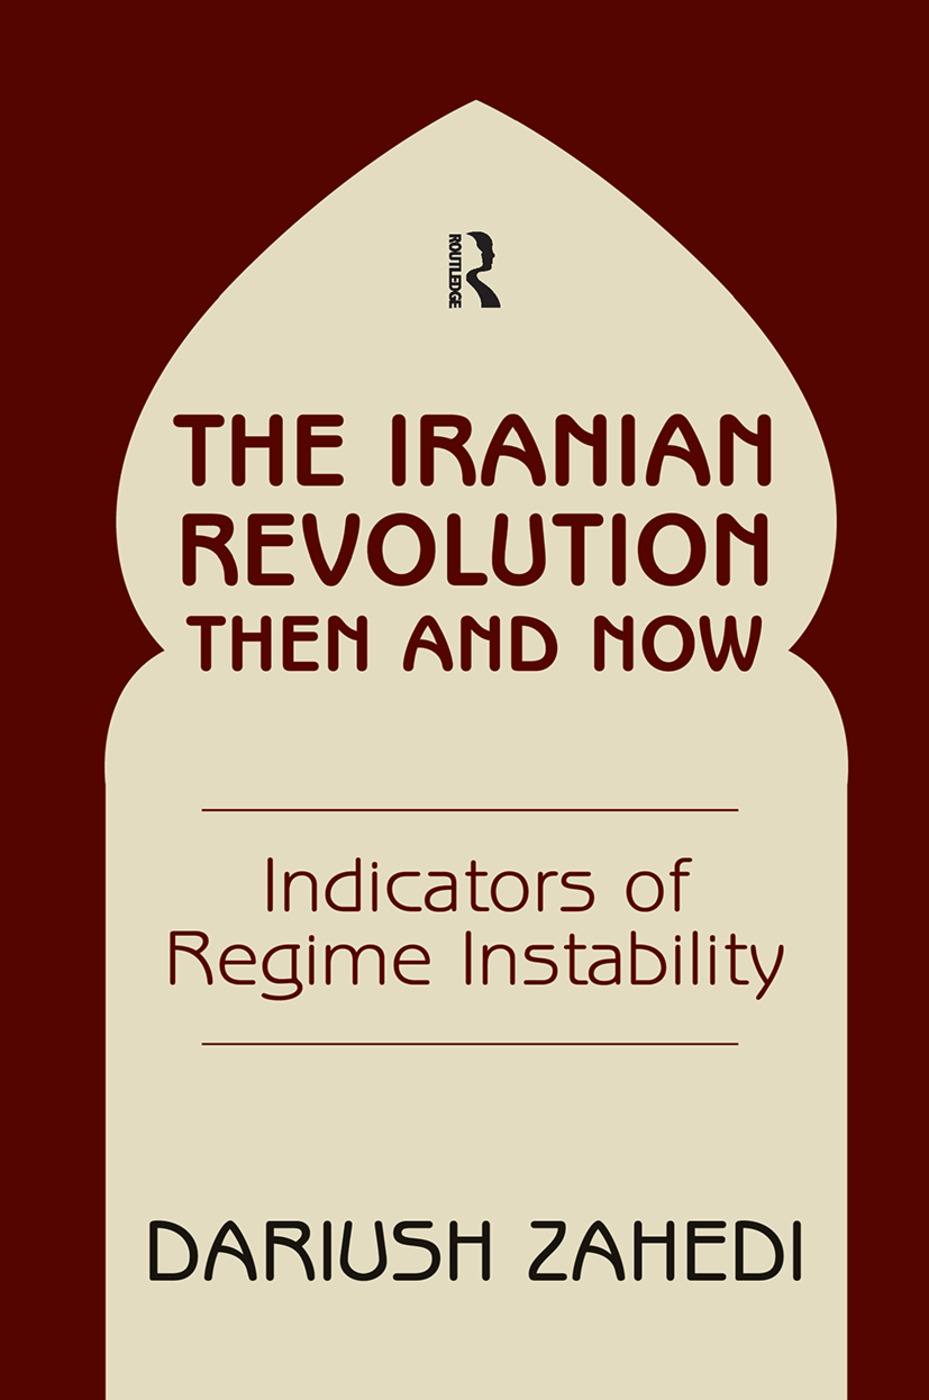 The Iranian Revolution Then And Now: Indicators Of Regime Instability book cover